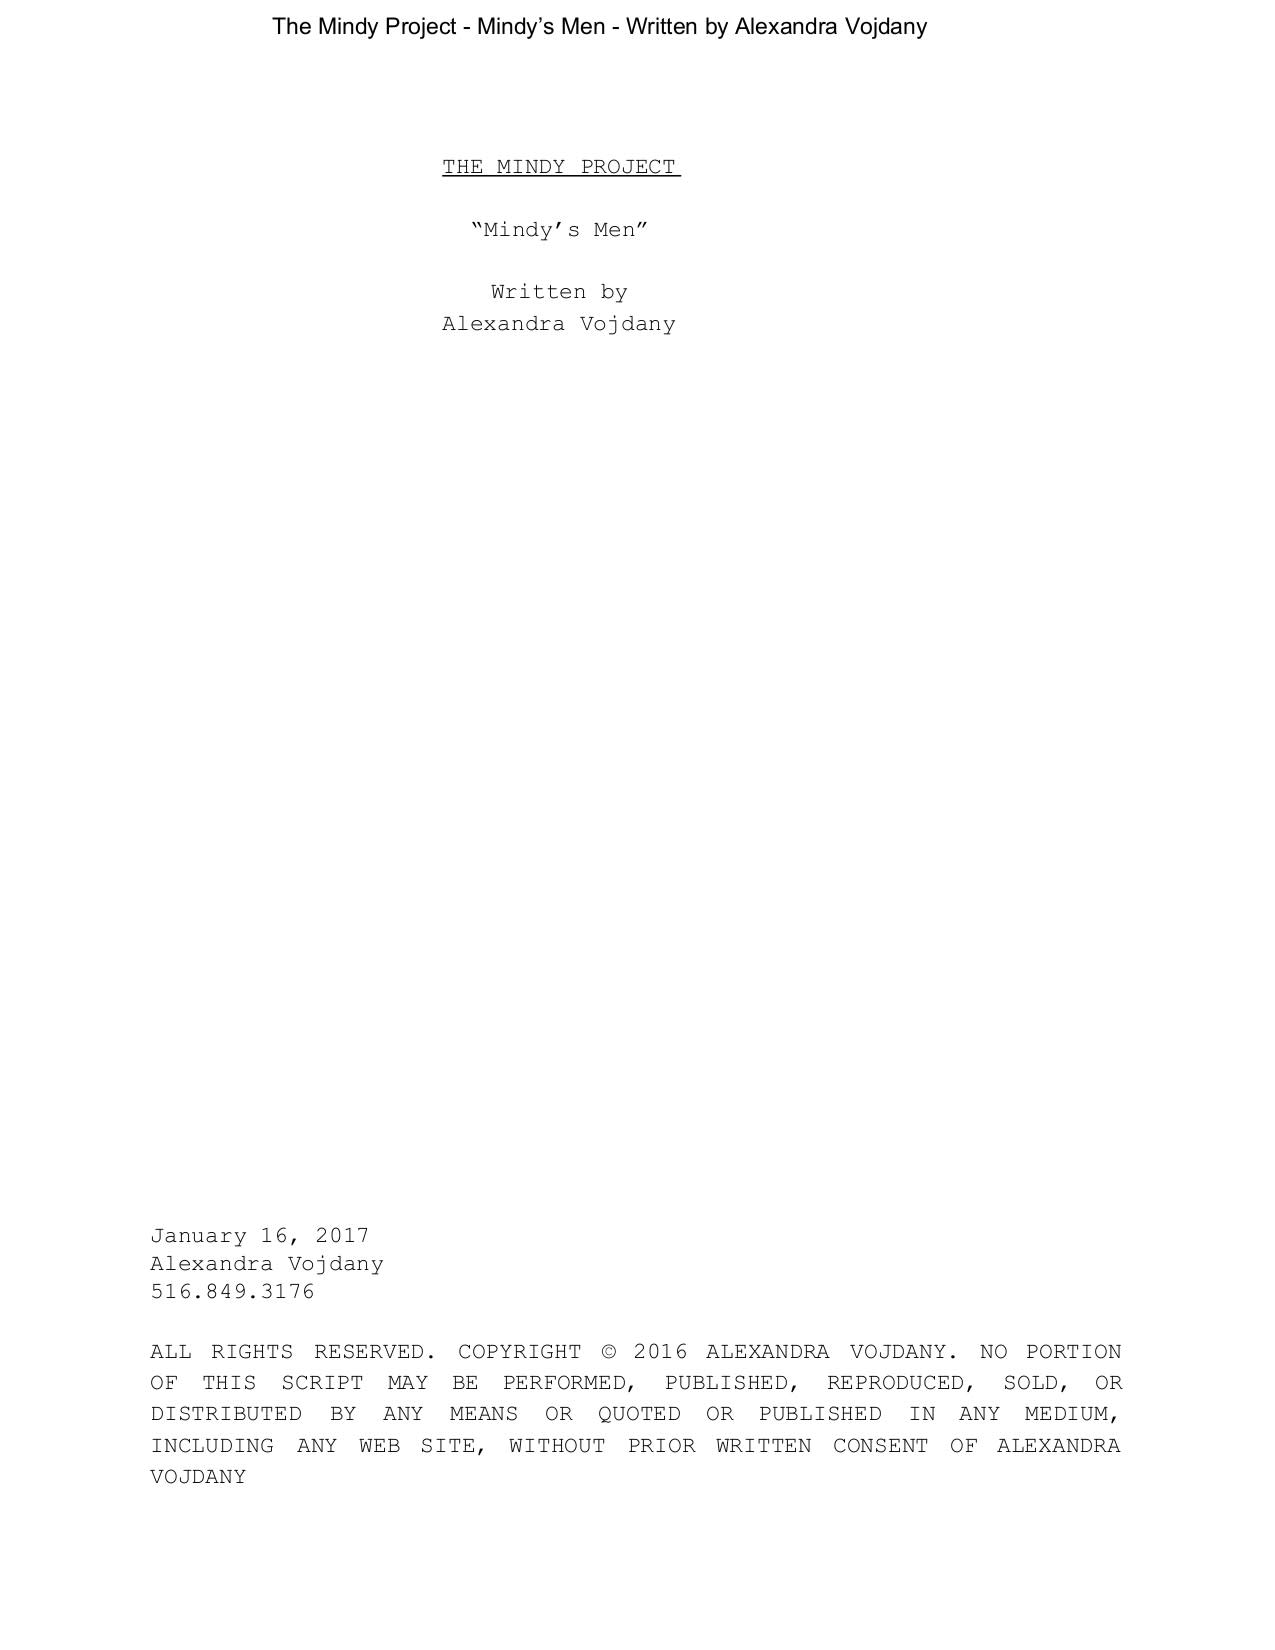 Screenplay: The Mindy Project